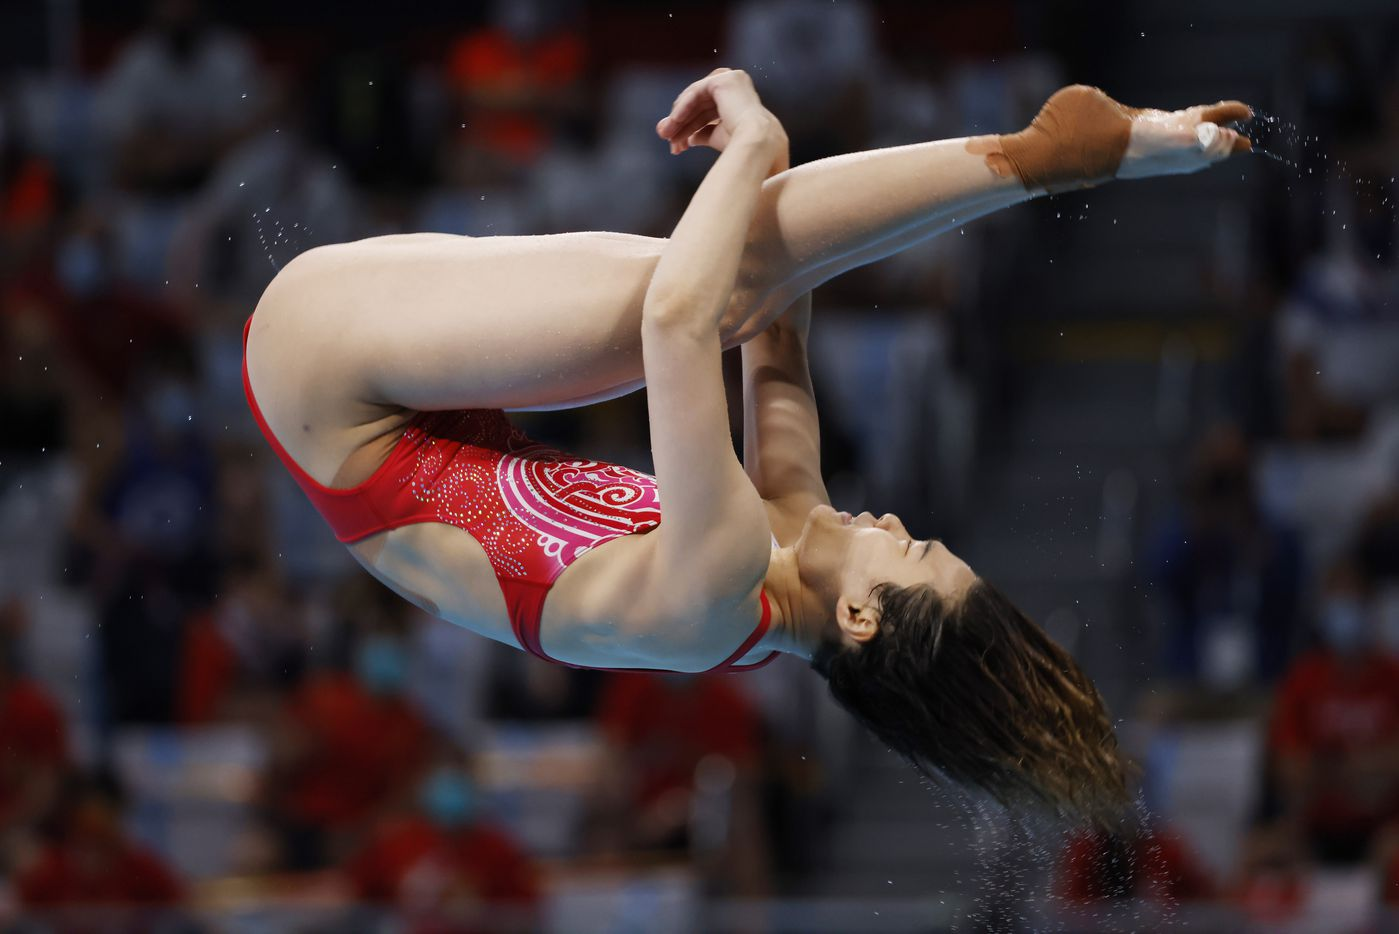 China's Shi Tingmao dives in the women's 3 meter springboard final during the postponed 2020 Tokyo Olympics at Tokyo Aquatics Centre, on Sunday, August 1, 2021, in Tokyo, Japan. Tingmao finished 1st with a total score of 383.50 to earn a gold medal. (Vernon Bryant/The Dallas Morning News)